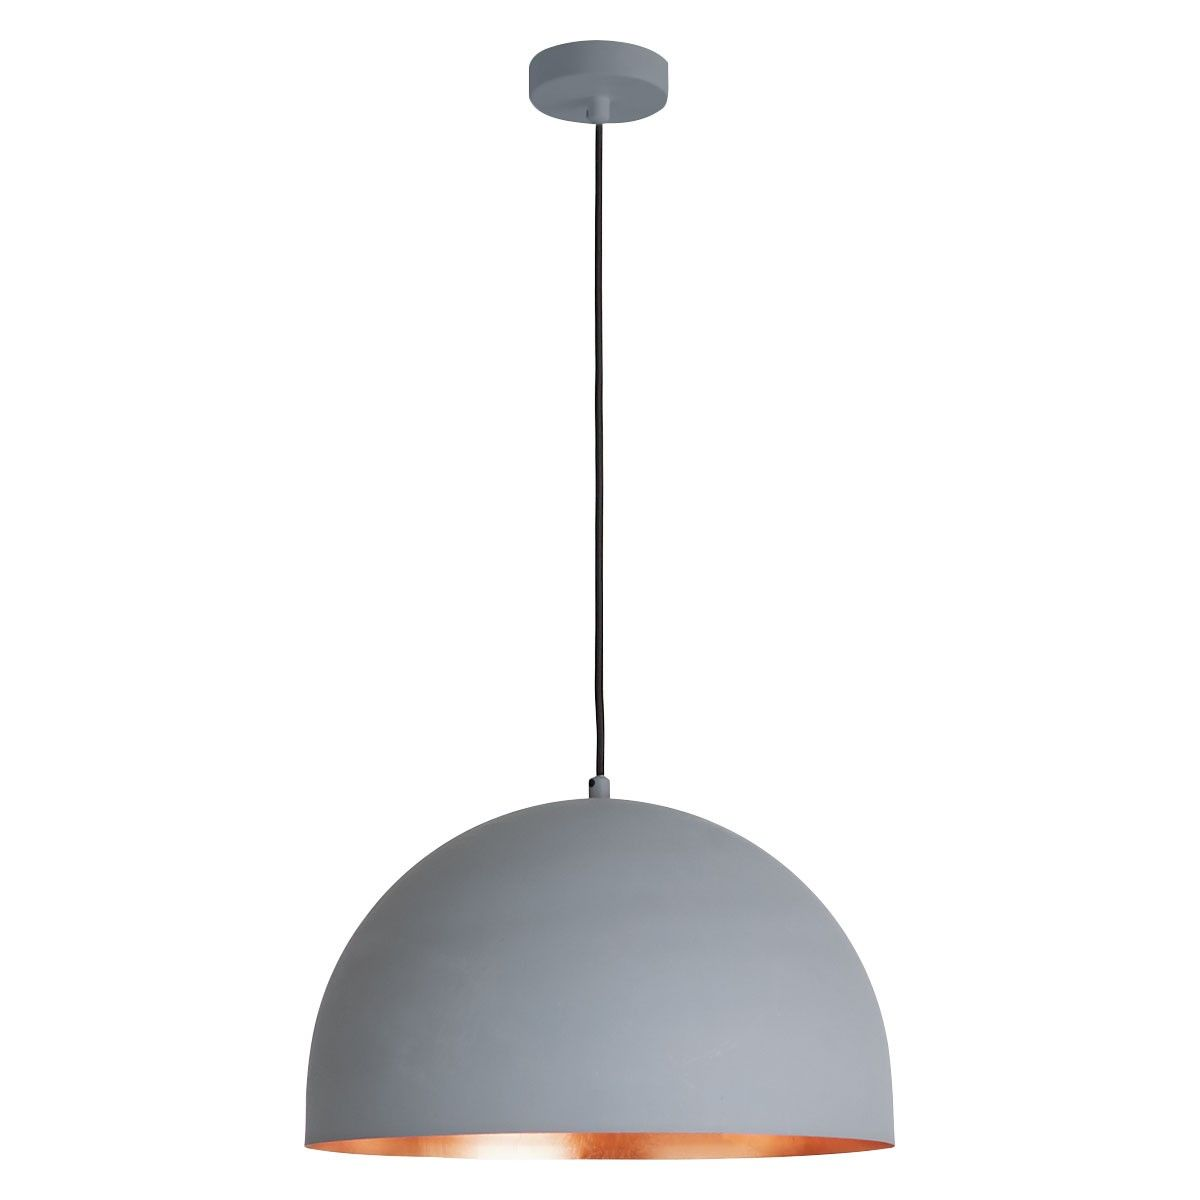 EAST Grey And Copper Metal Ceiling Light